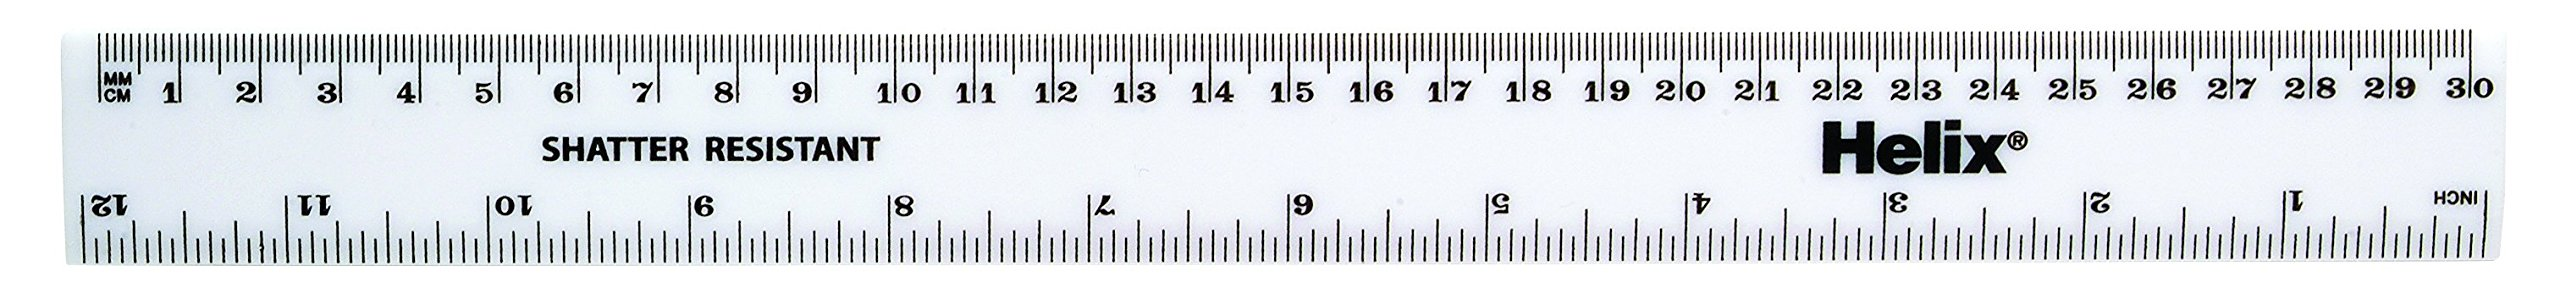 Helix 30cm 300 mm Metric Ruler White (Box of 100) by Helix